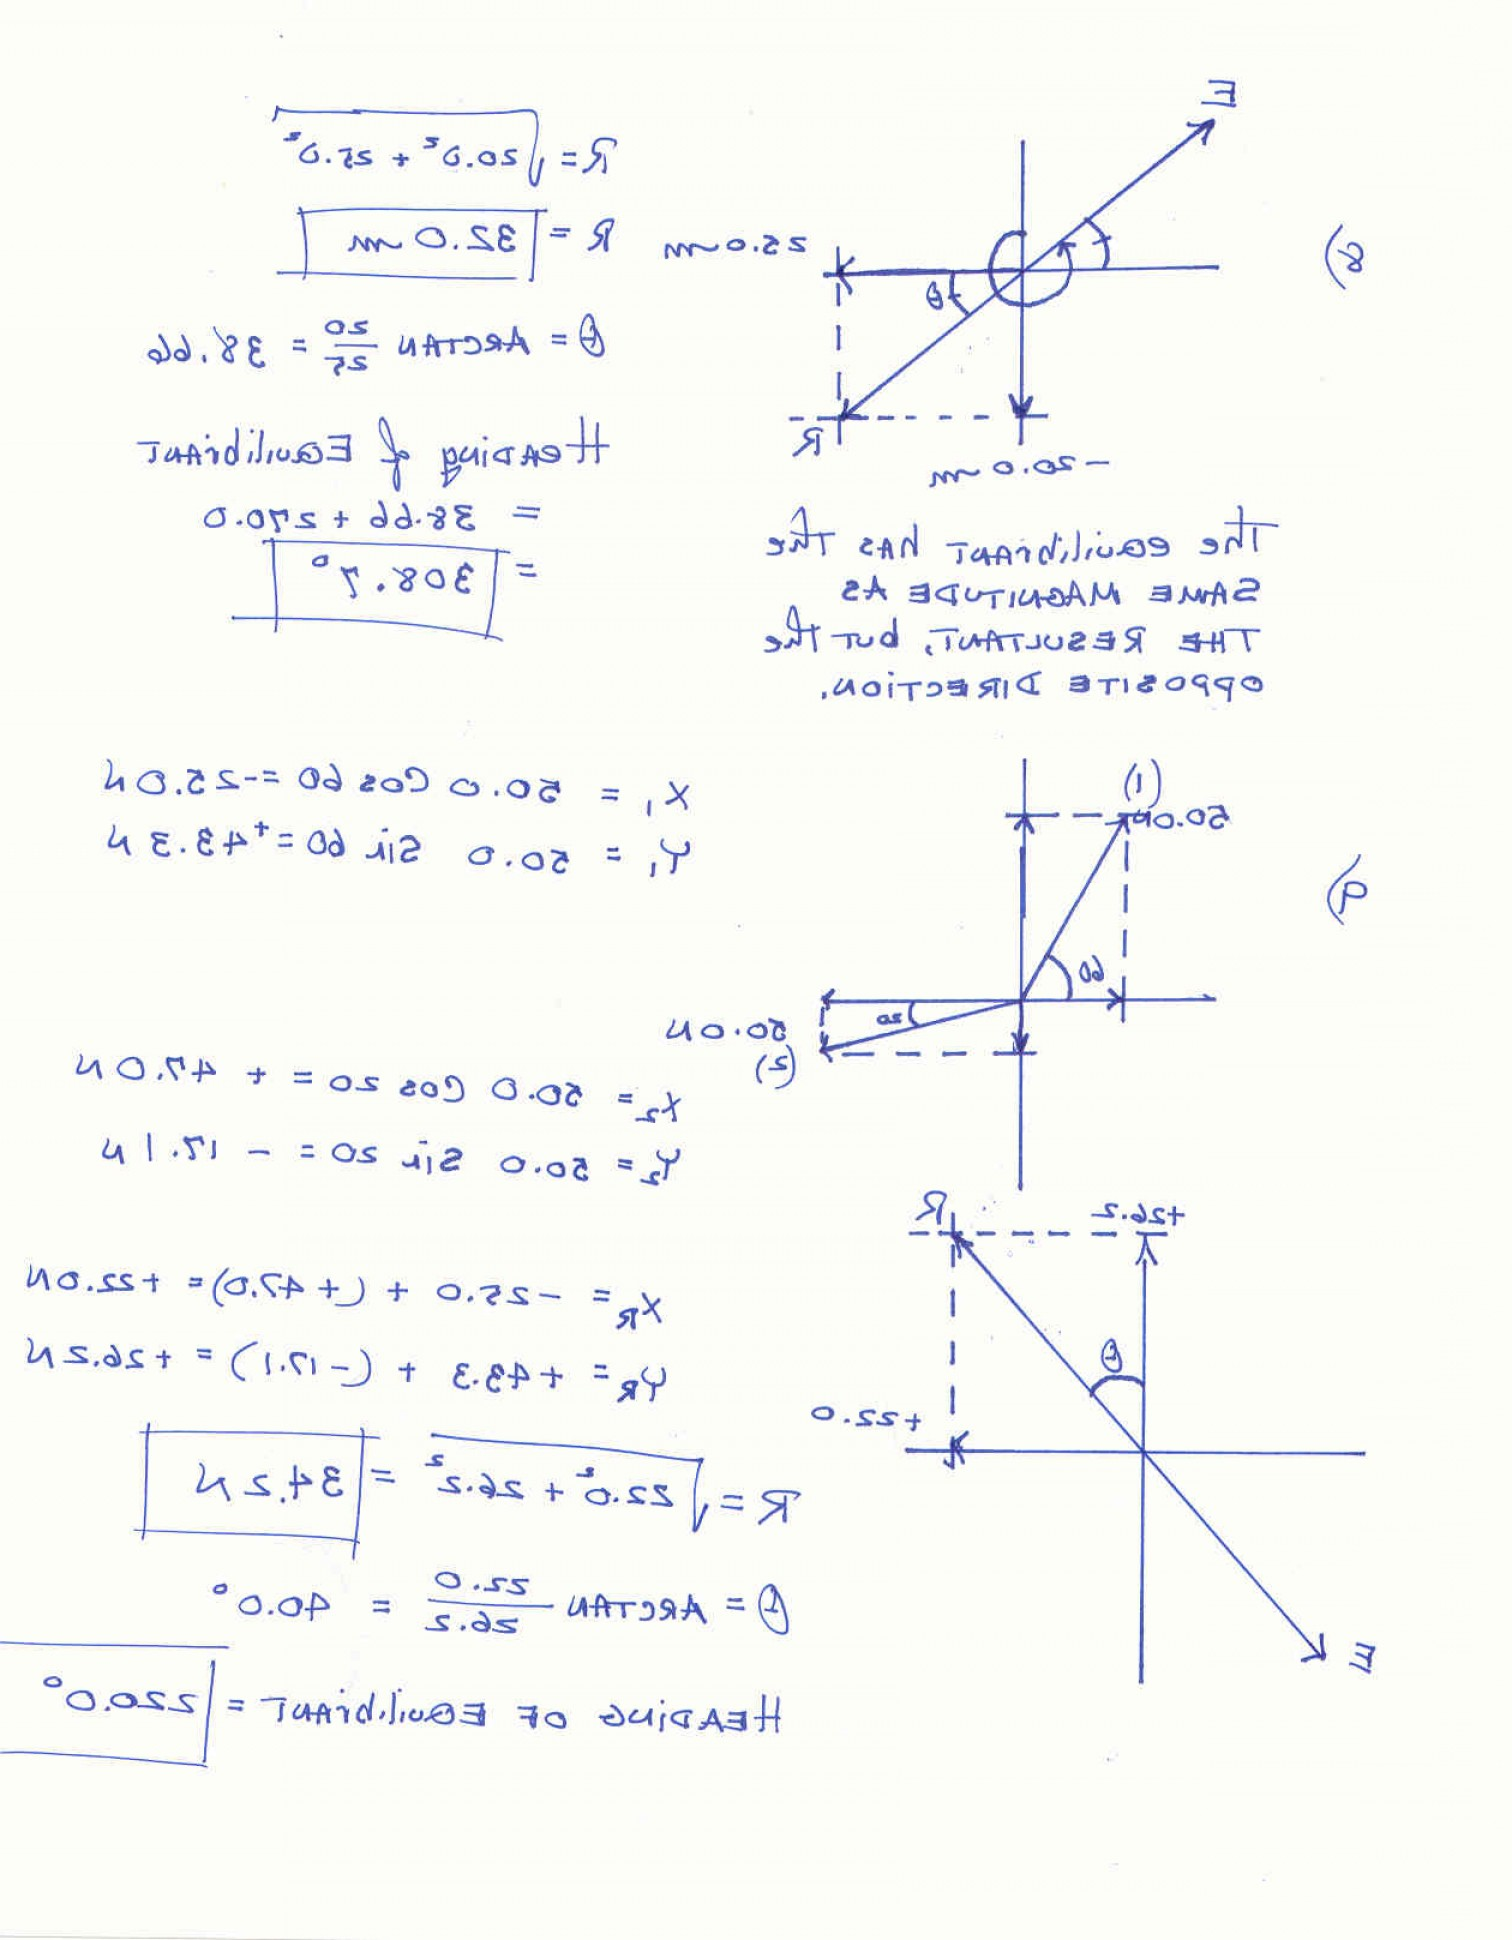 Vector Addition Worksheet Answer Key : vector, addition, worksheet, answer, Worksheet, Introduction, Vectors, Angles, Answer, CreateMePink